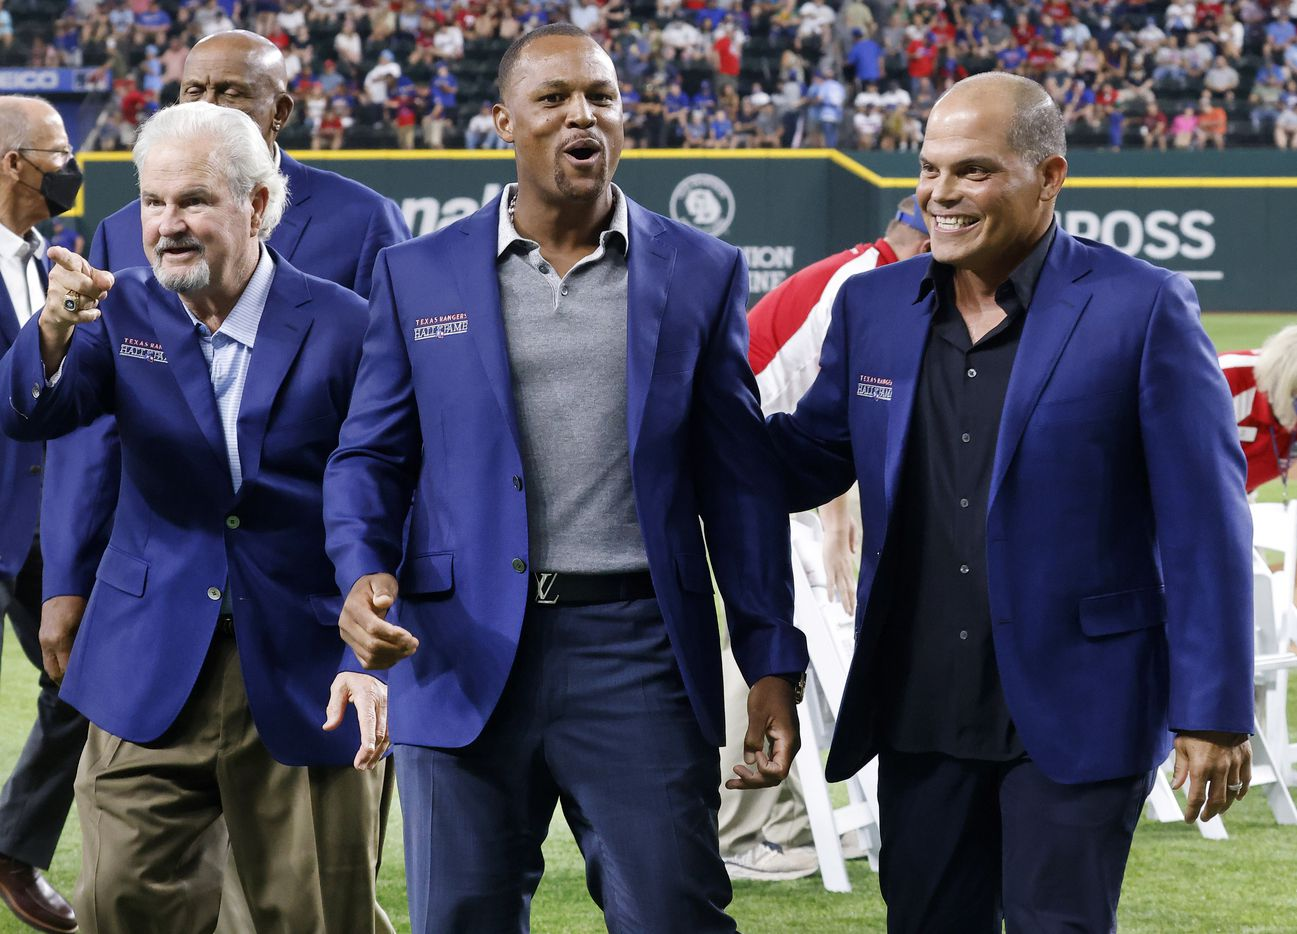 Former Texas Rangers third baseman Adrian Beltre (center) is congratulated by former Rangers catcher Ivan 'Pudge' Rodriguez (eight) after being inducted into the Texas Rangers Baseball Hall of Fame at Globe Life Field in Arlington, Saturday, August 14, 2021. Former Rangers catcher Jim Sundberg is pictured left. Executive vice president and public address announcer Chuck Morgan was also inducted. (Tom Fox/The Dallas Morning News)